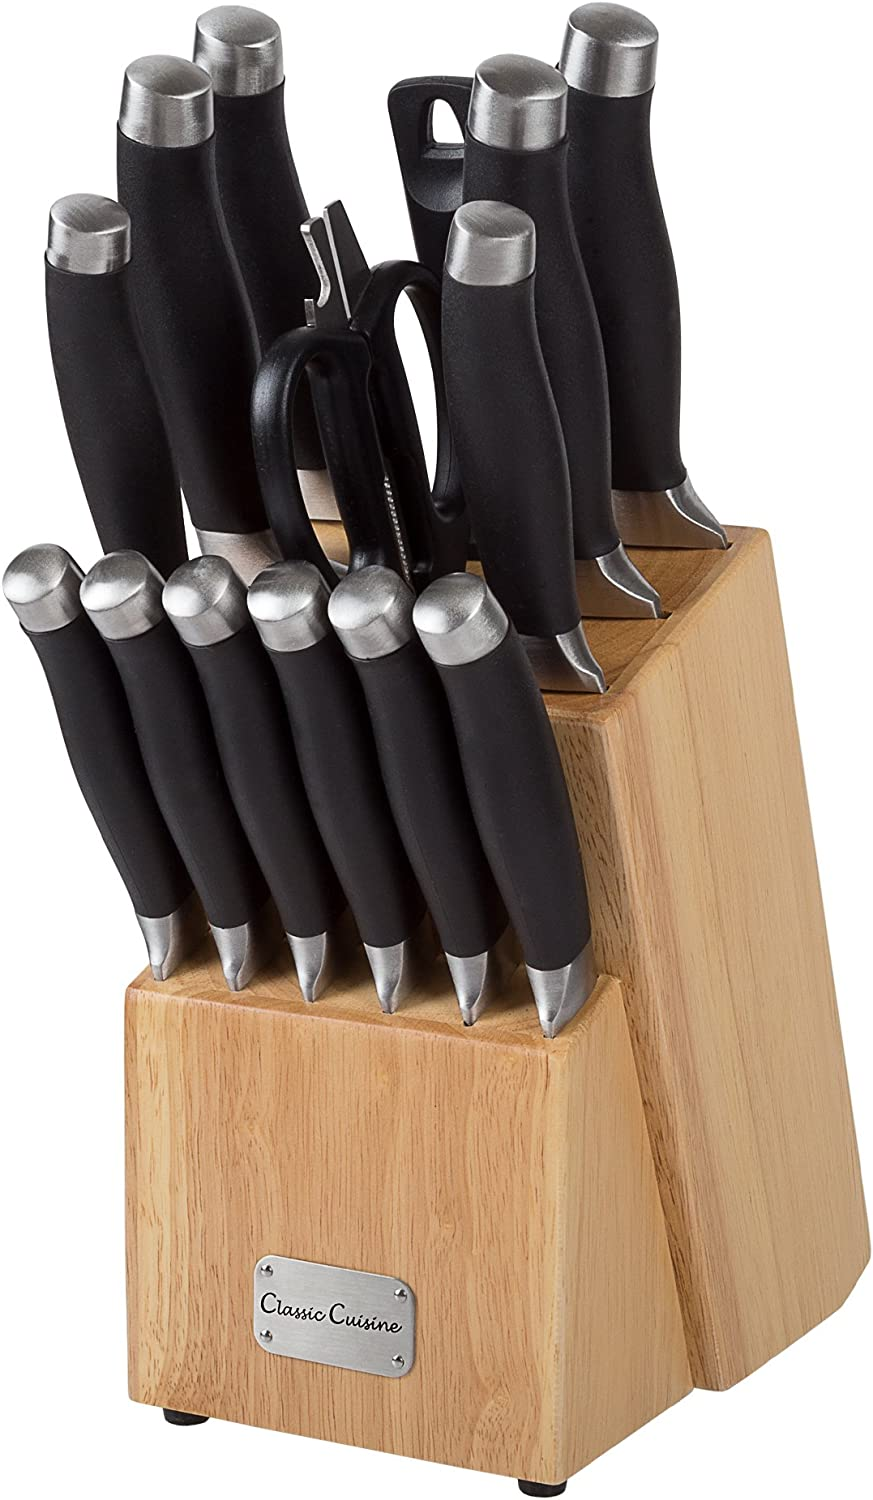 Professional Quality 15 Piece Stainless Knife Set with Shears Sharpener Chef Bread Santoku Filet Paring Steak Knives and Wood Block by Classic Cuisine